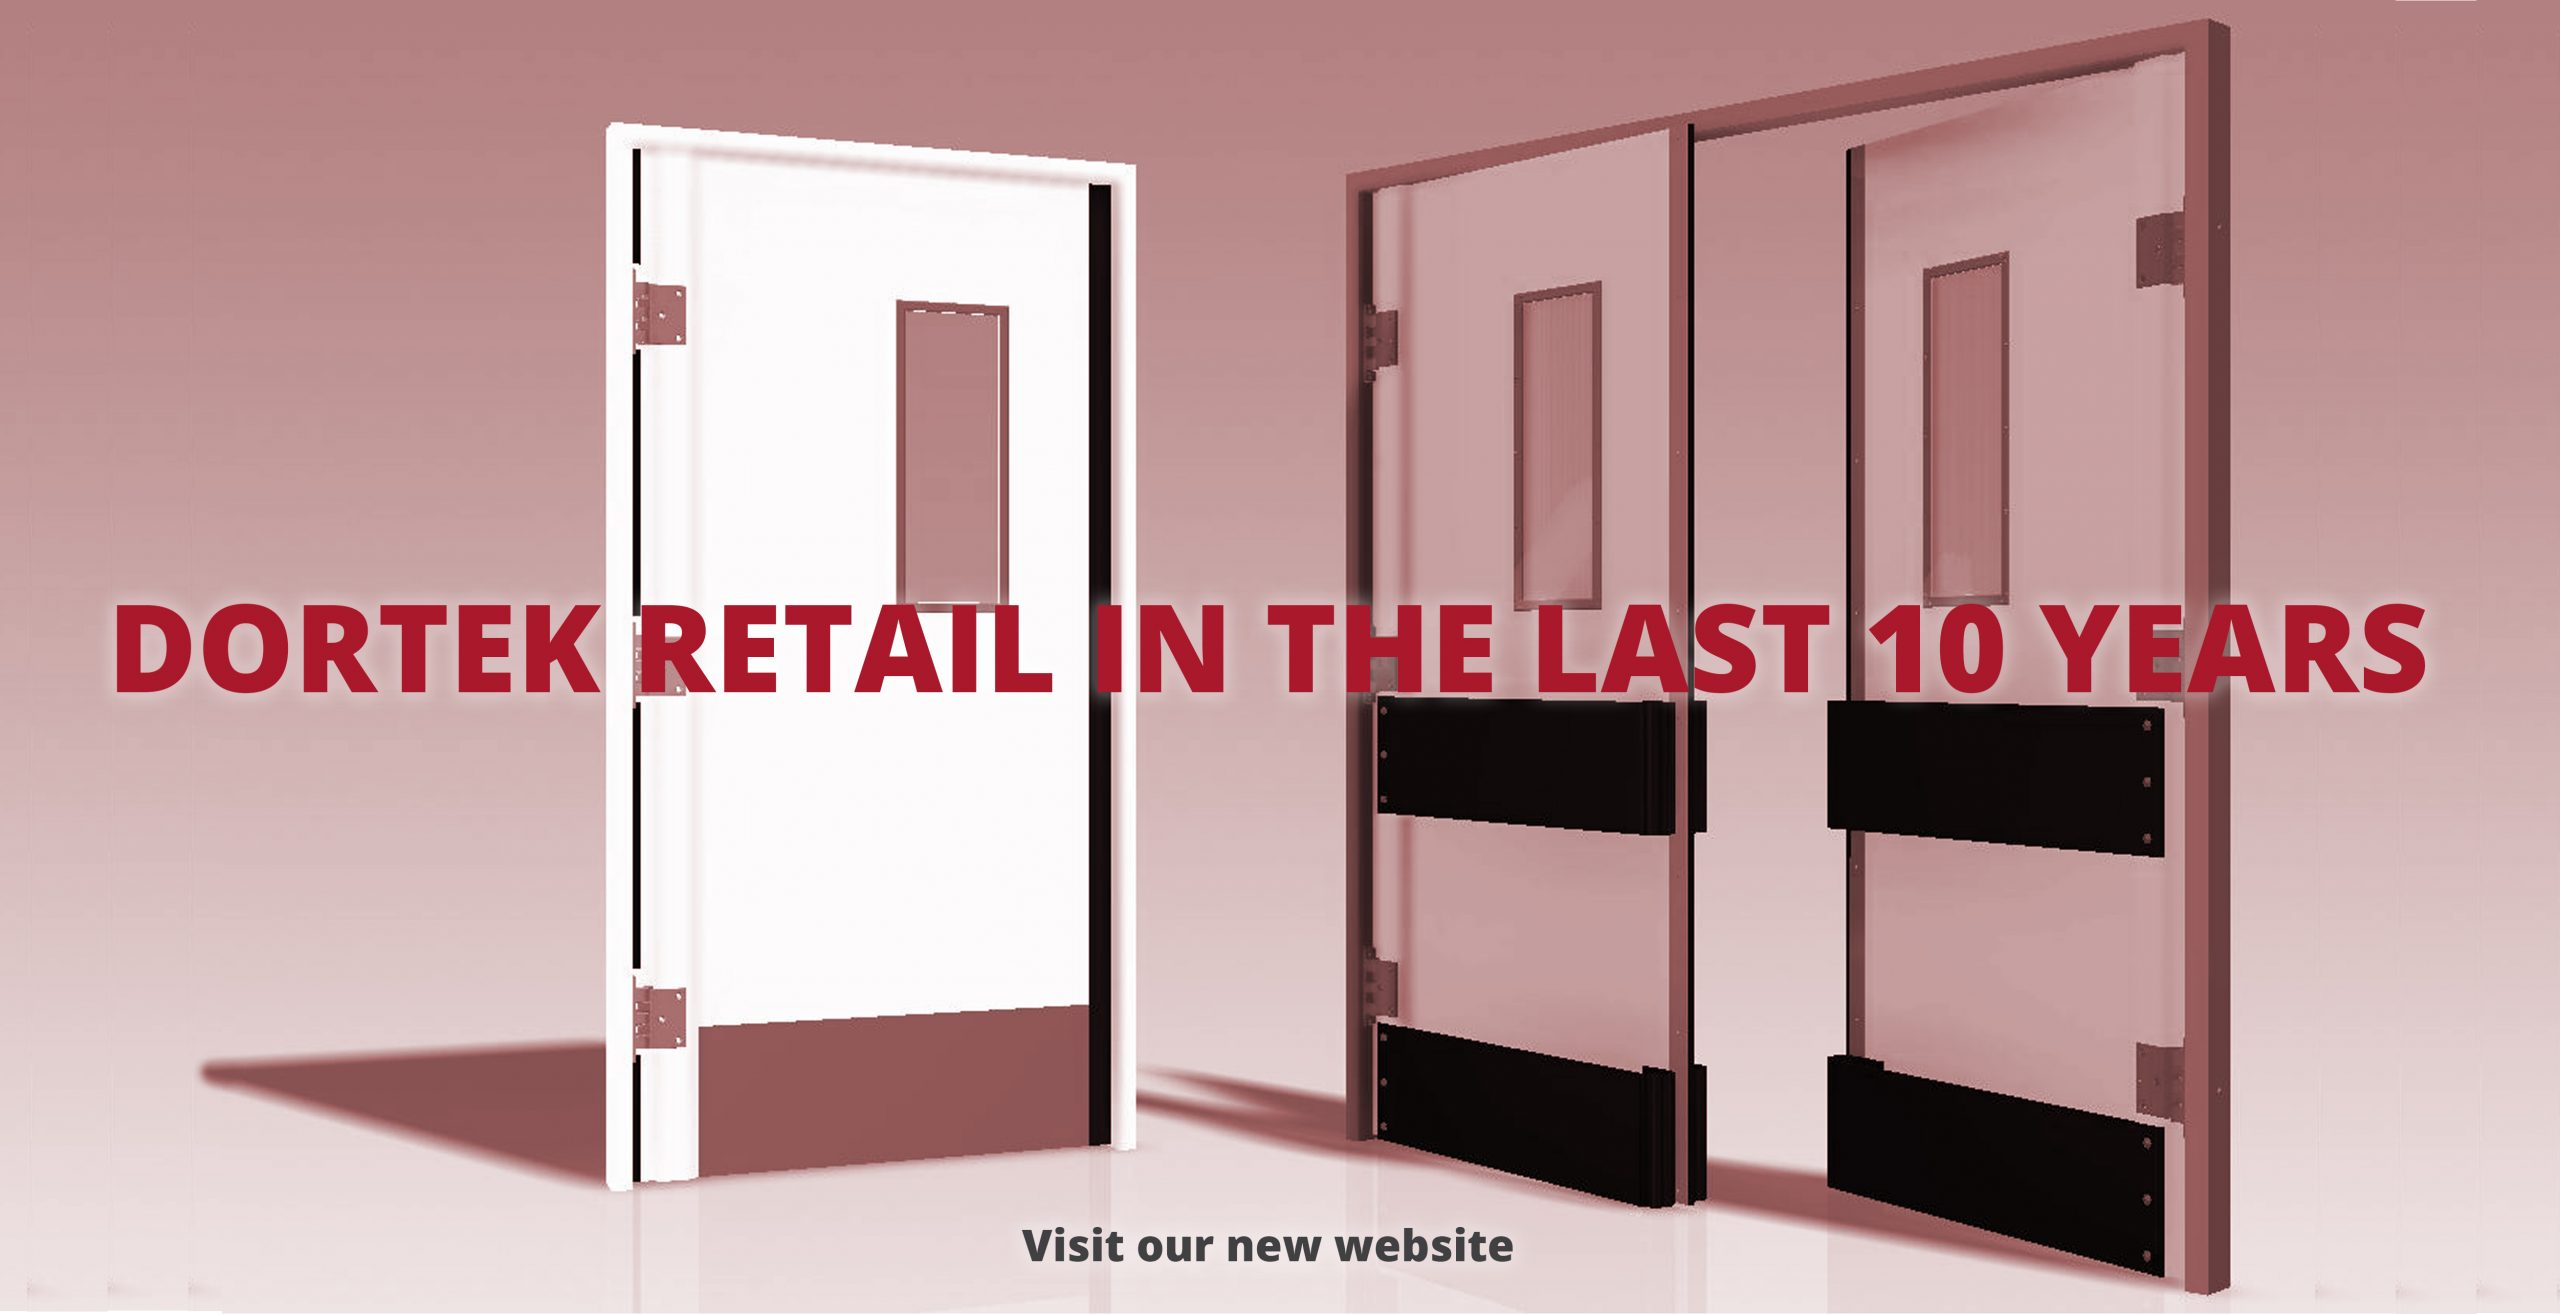 Dortek Retail in the last 10 years!